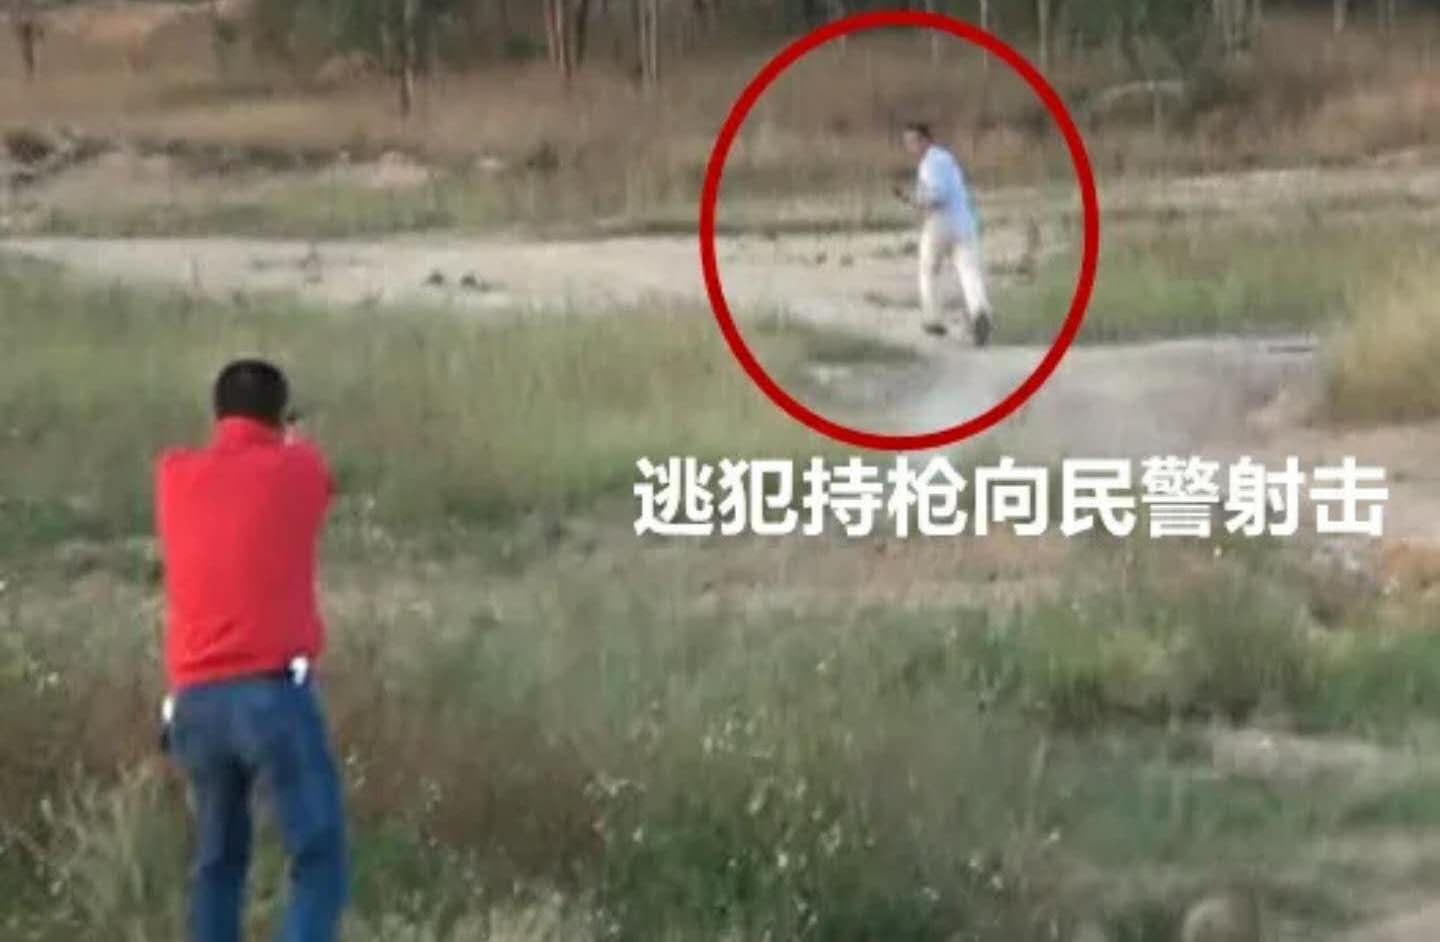 Police Capture Gun-Wielding Fugitive in South China